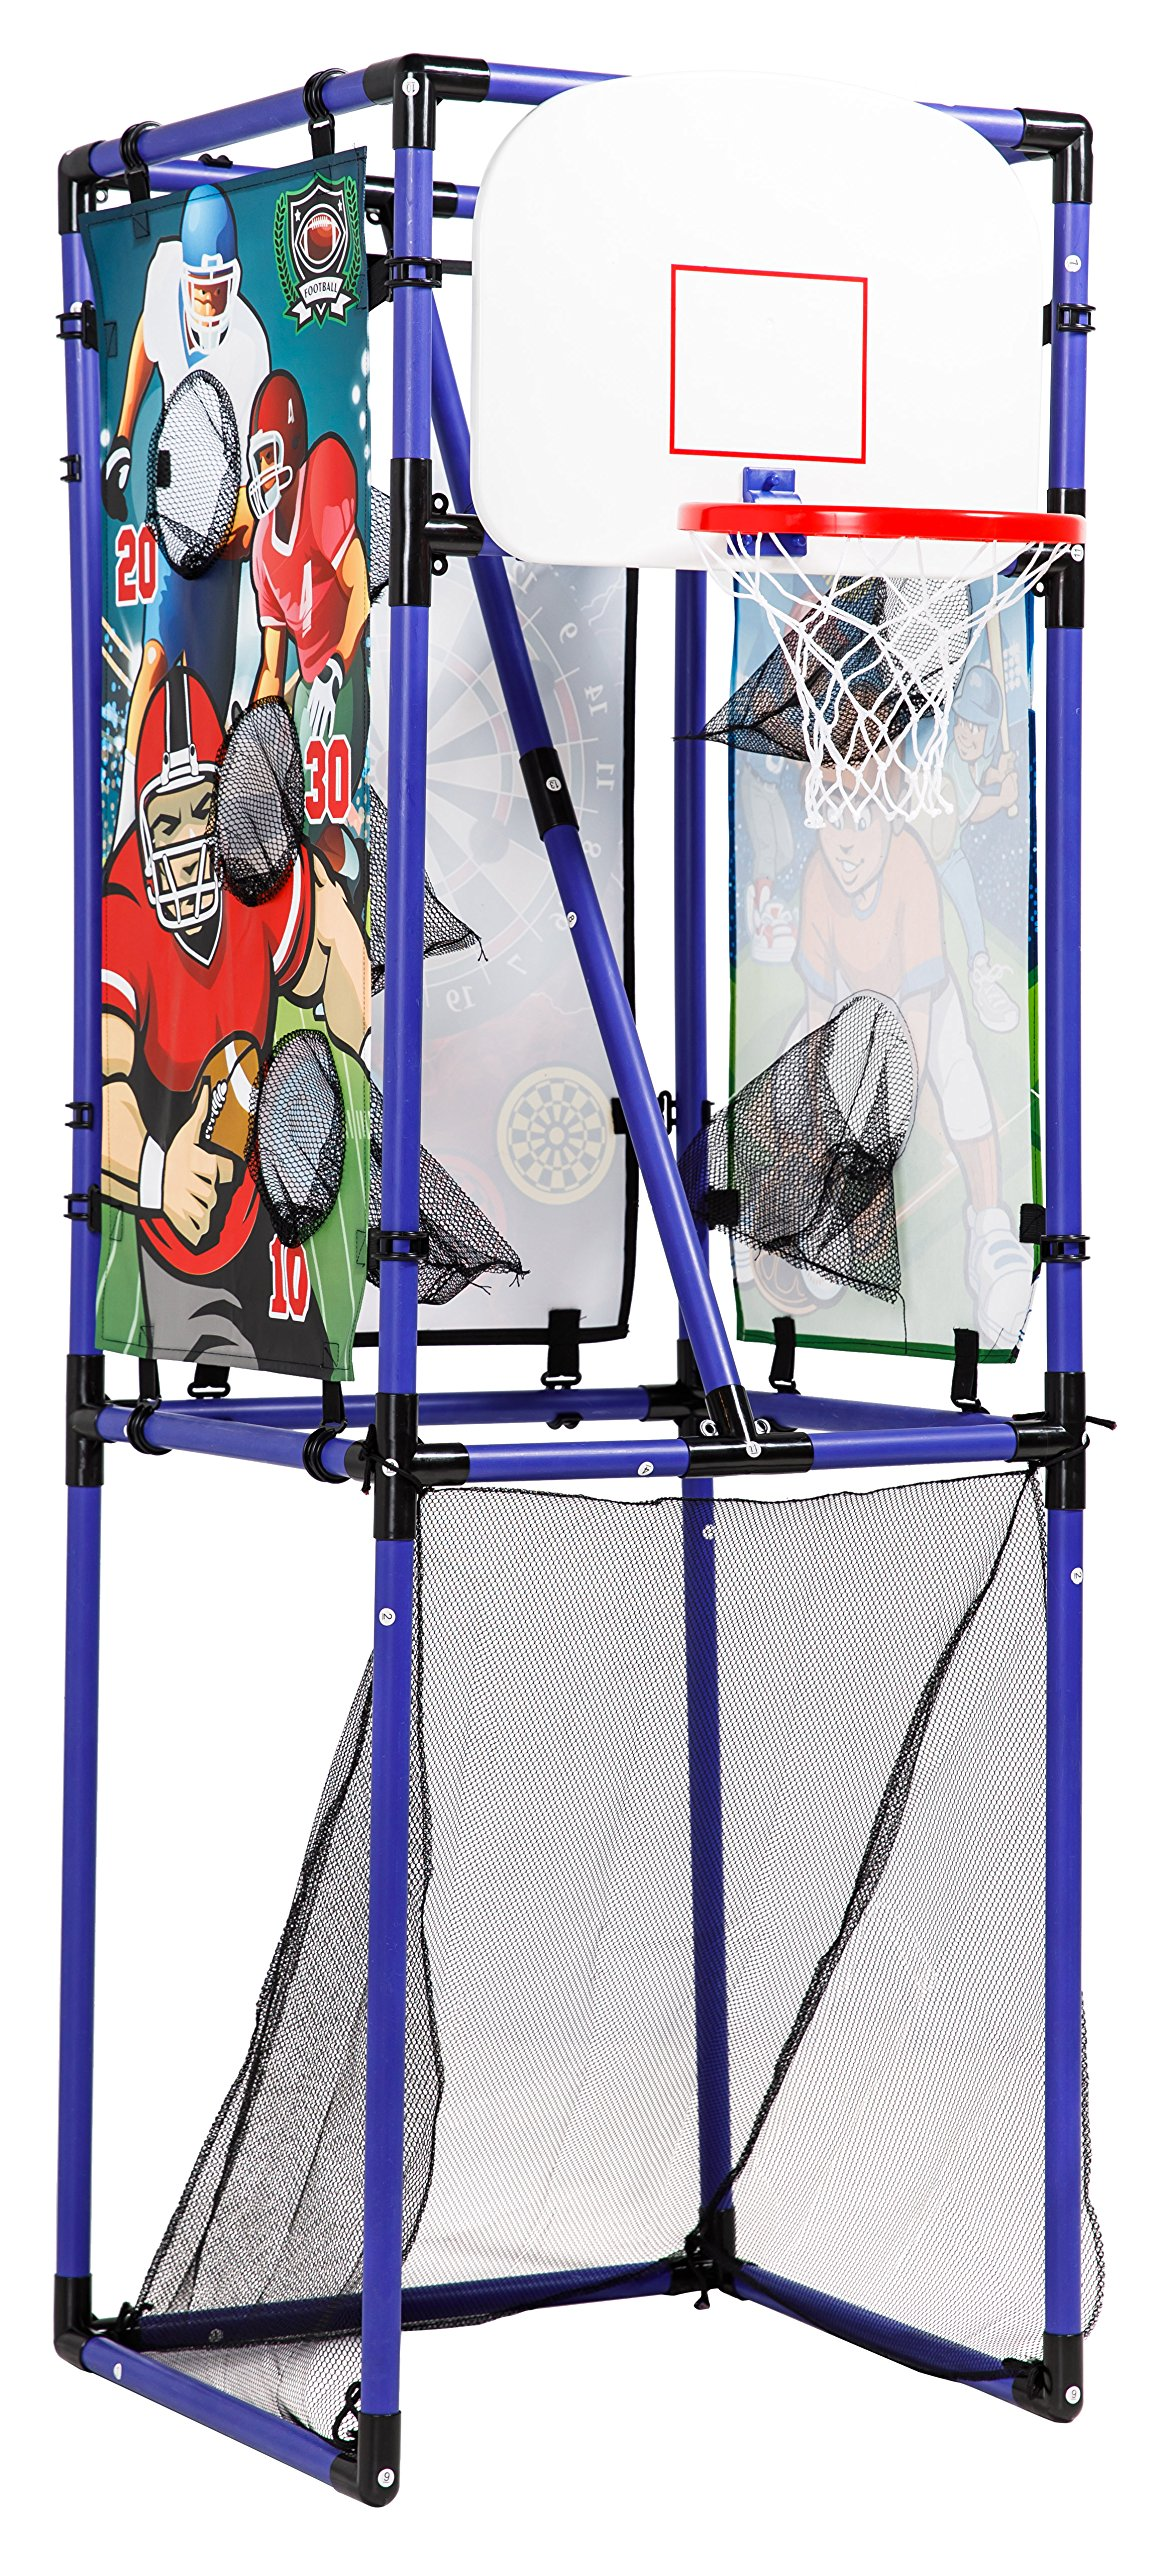 Sport Squad 5-in-1 Multi-Sport Kid's Game Set – Features Baseball, Basketball, Football, Soccer, Darts – Great for Indoor and Outdoor Play by Sport Squad (Image #1)